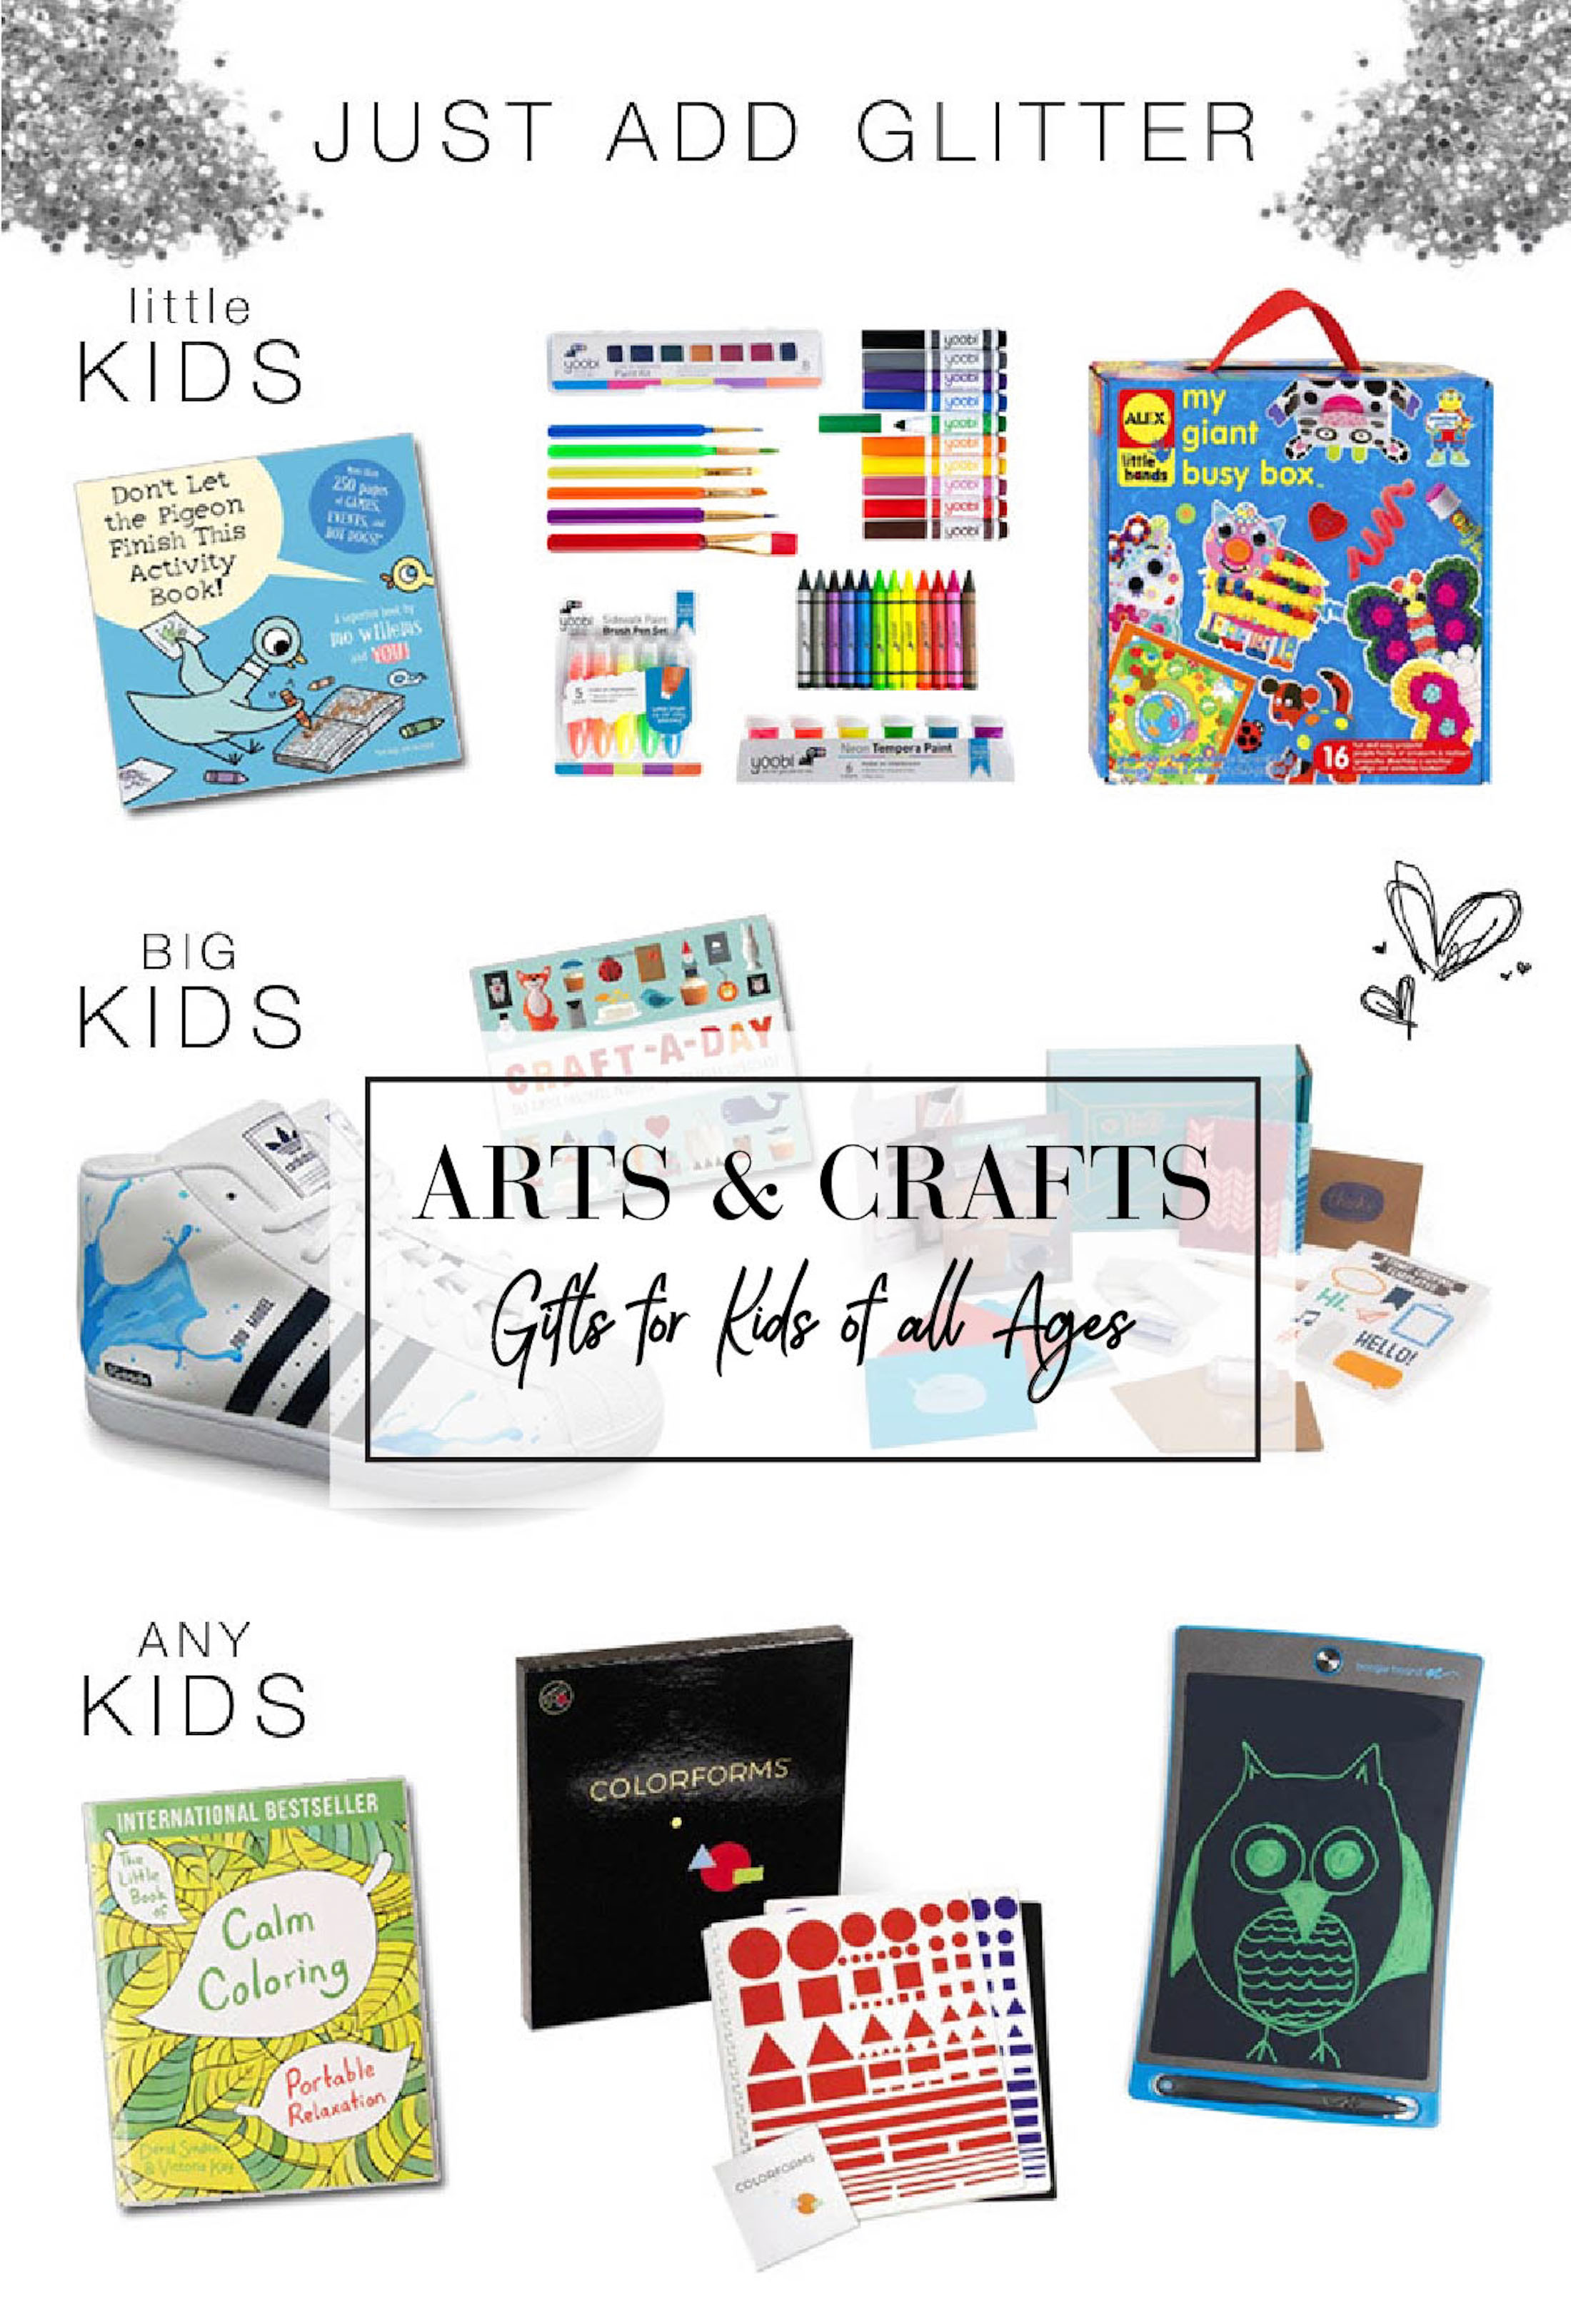 Our favorite creative gifts for children that promote imagination and quiet time, most of which aren't electronic. Arts & crafts gifts for kids of all ages.